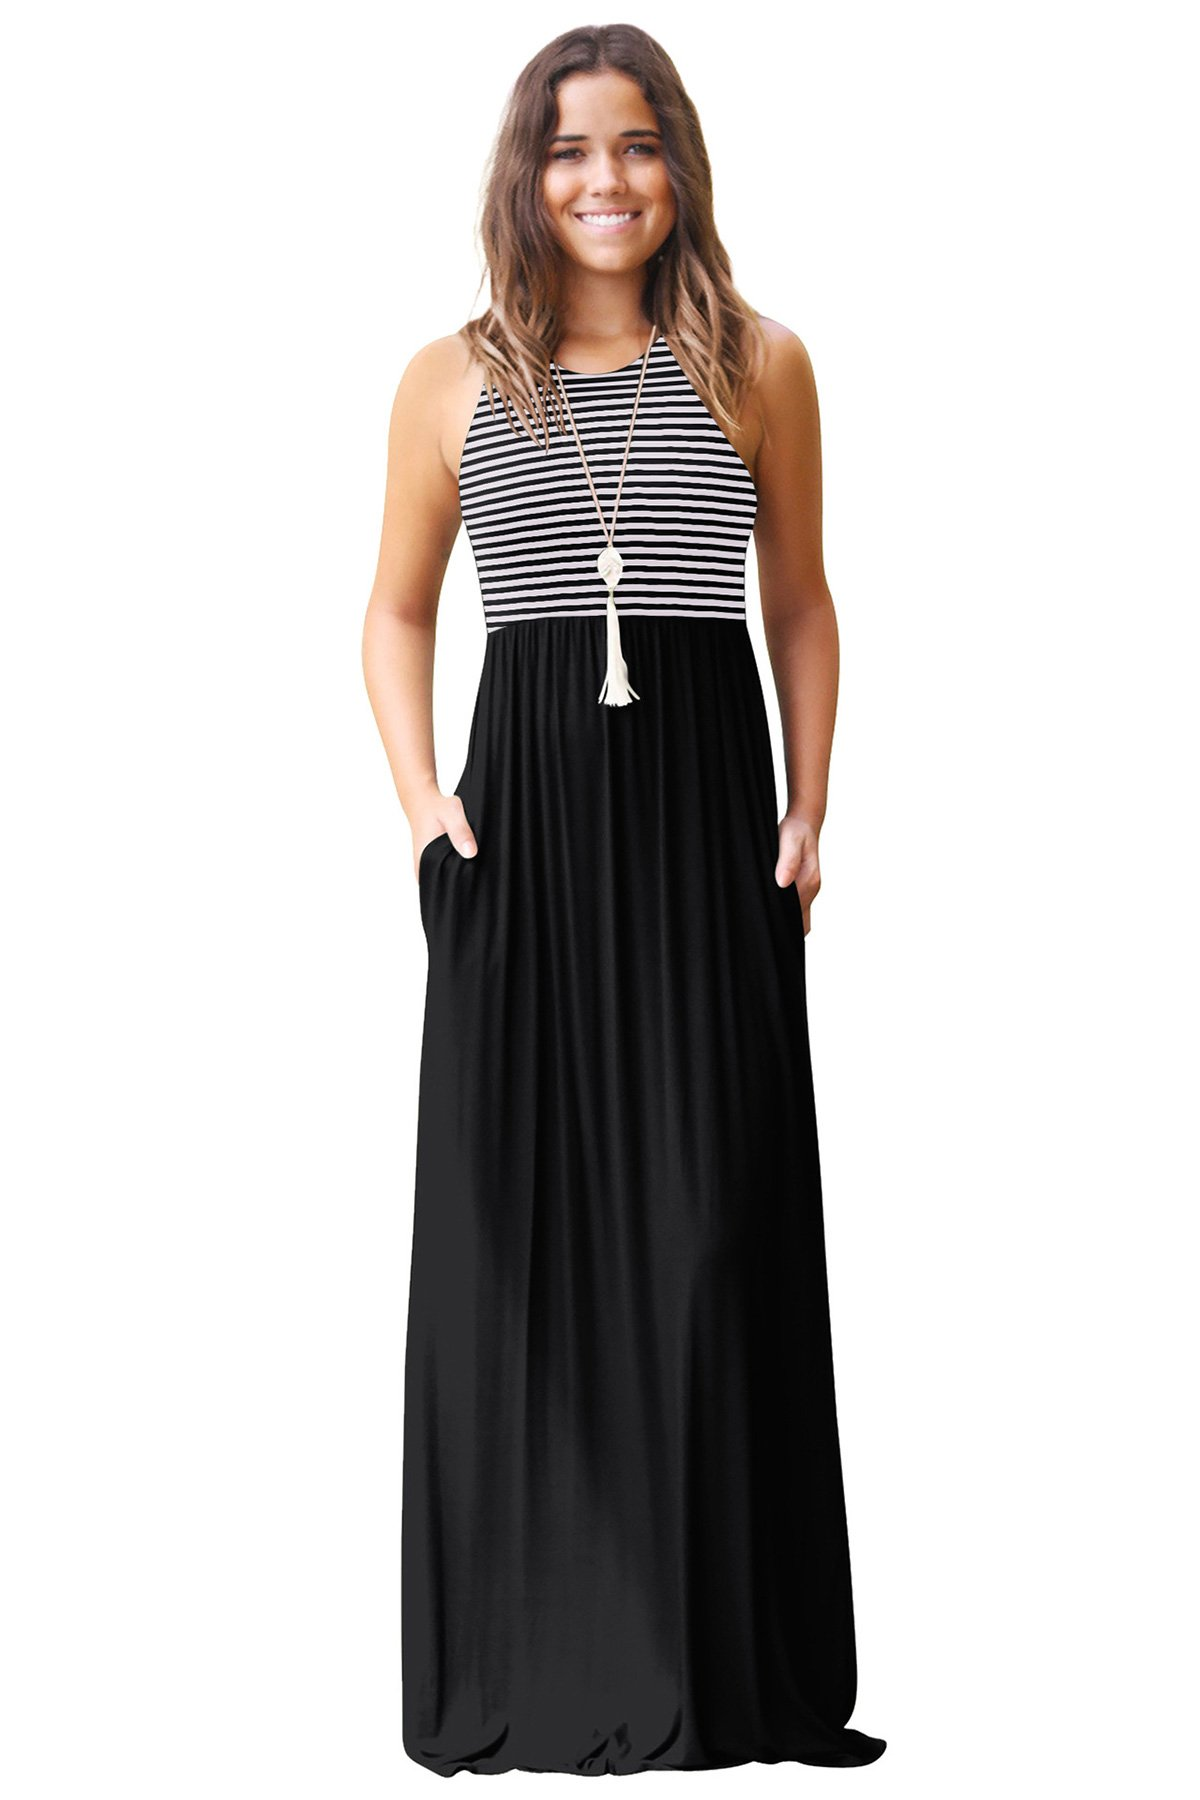 JOXJOZ Women's Sleeveless Racerback Loose Striped Maxi Dresses Casual Long Party Dresses with Pockets (Black, S)